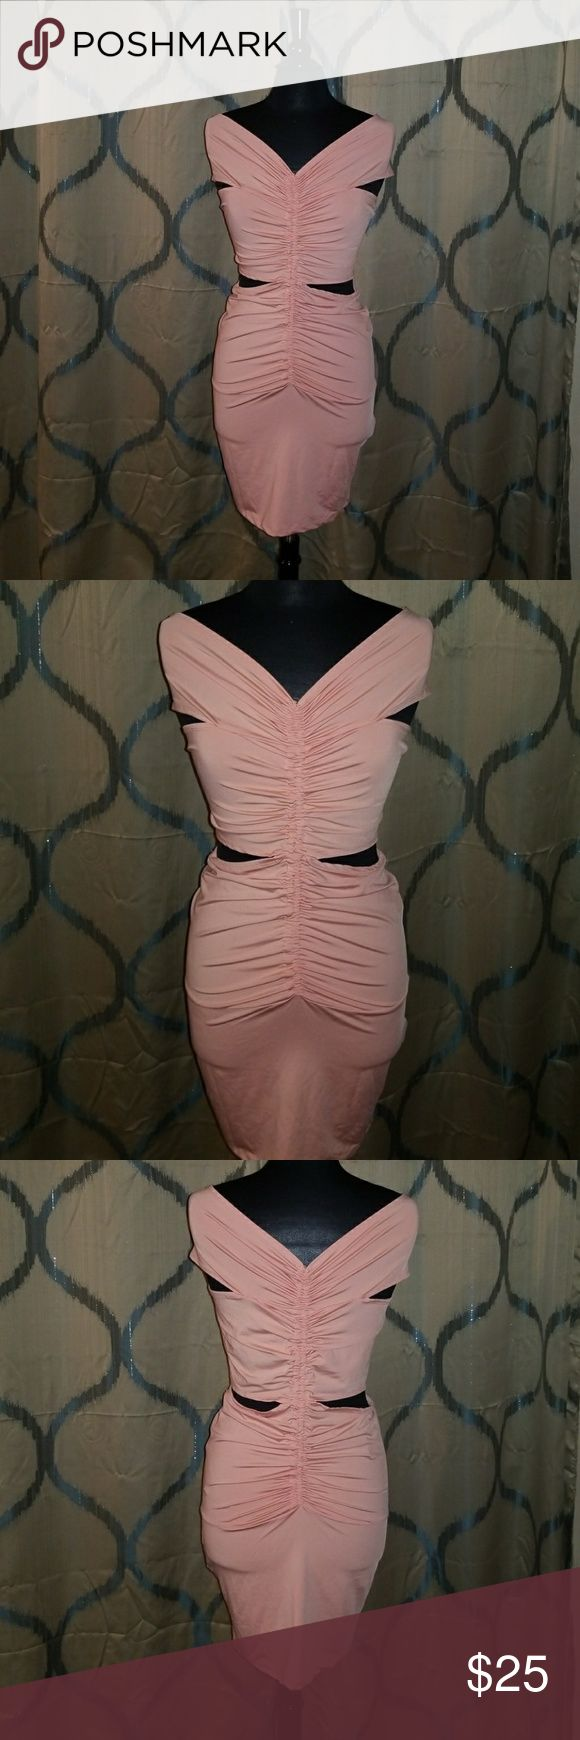 Party Dress NWOT peach party dress. Has cutouts on the sides. Never worn, excellent condition. Very stretchy. 92% polyester, 8% spandex Dresses Mini